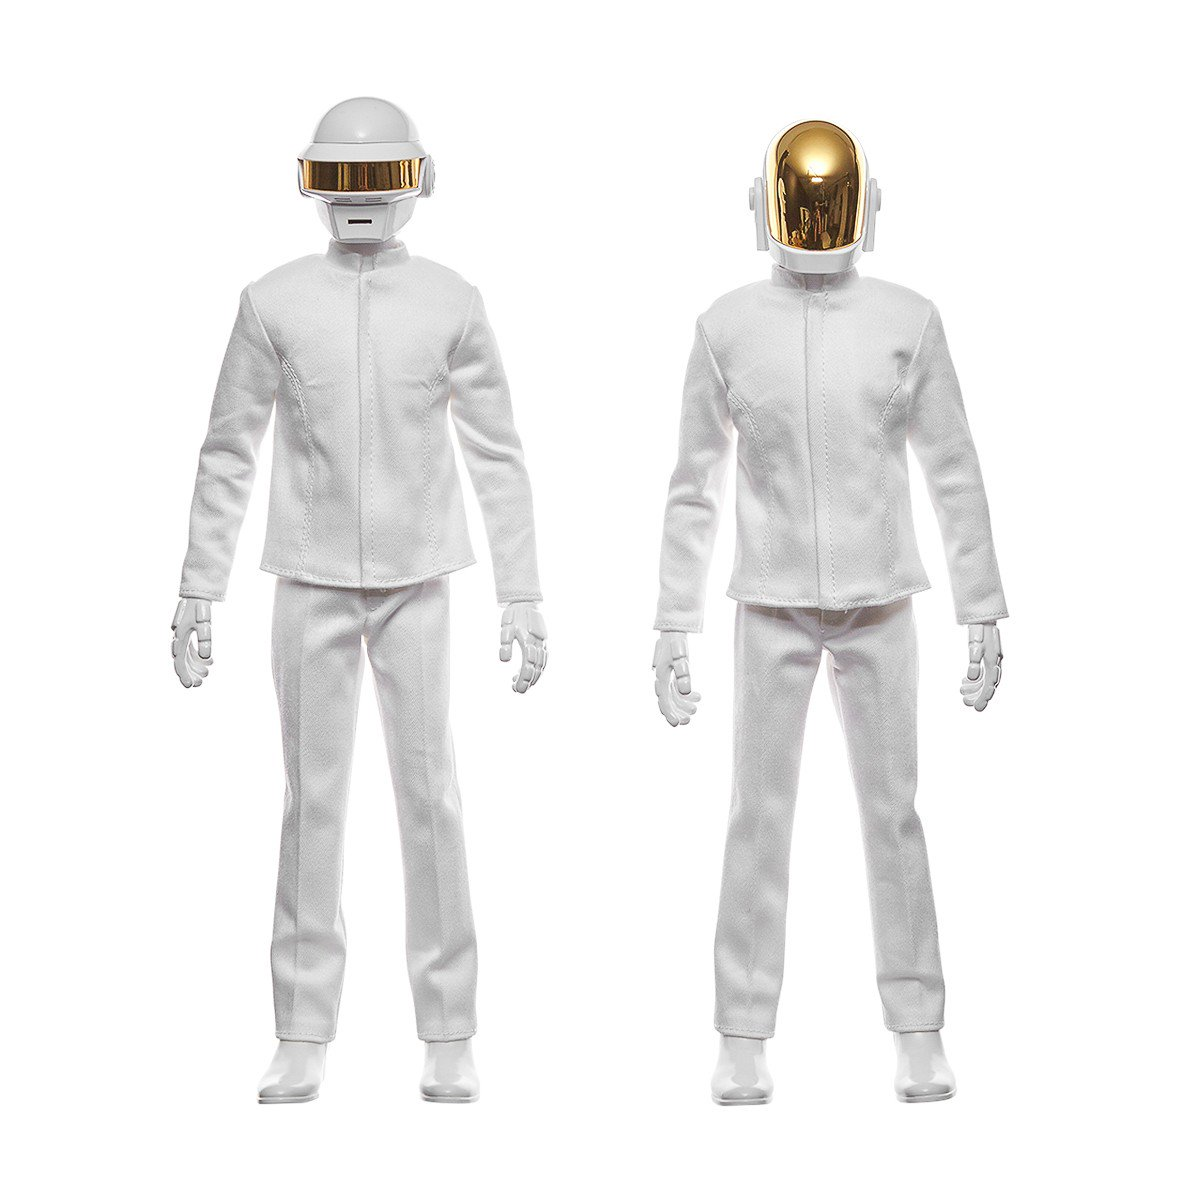 daft-punk-doll-white-suit